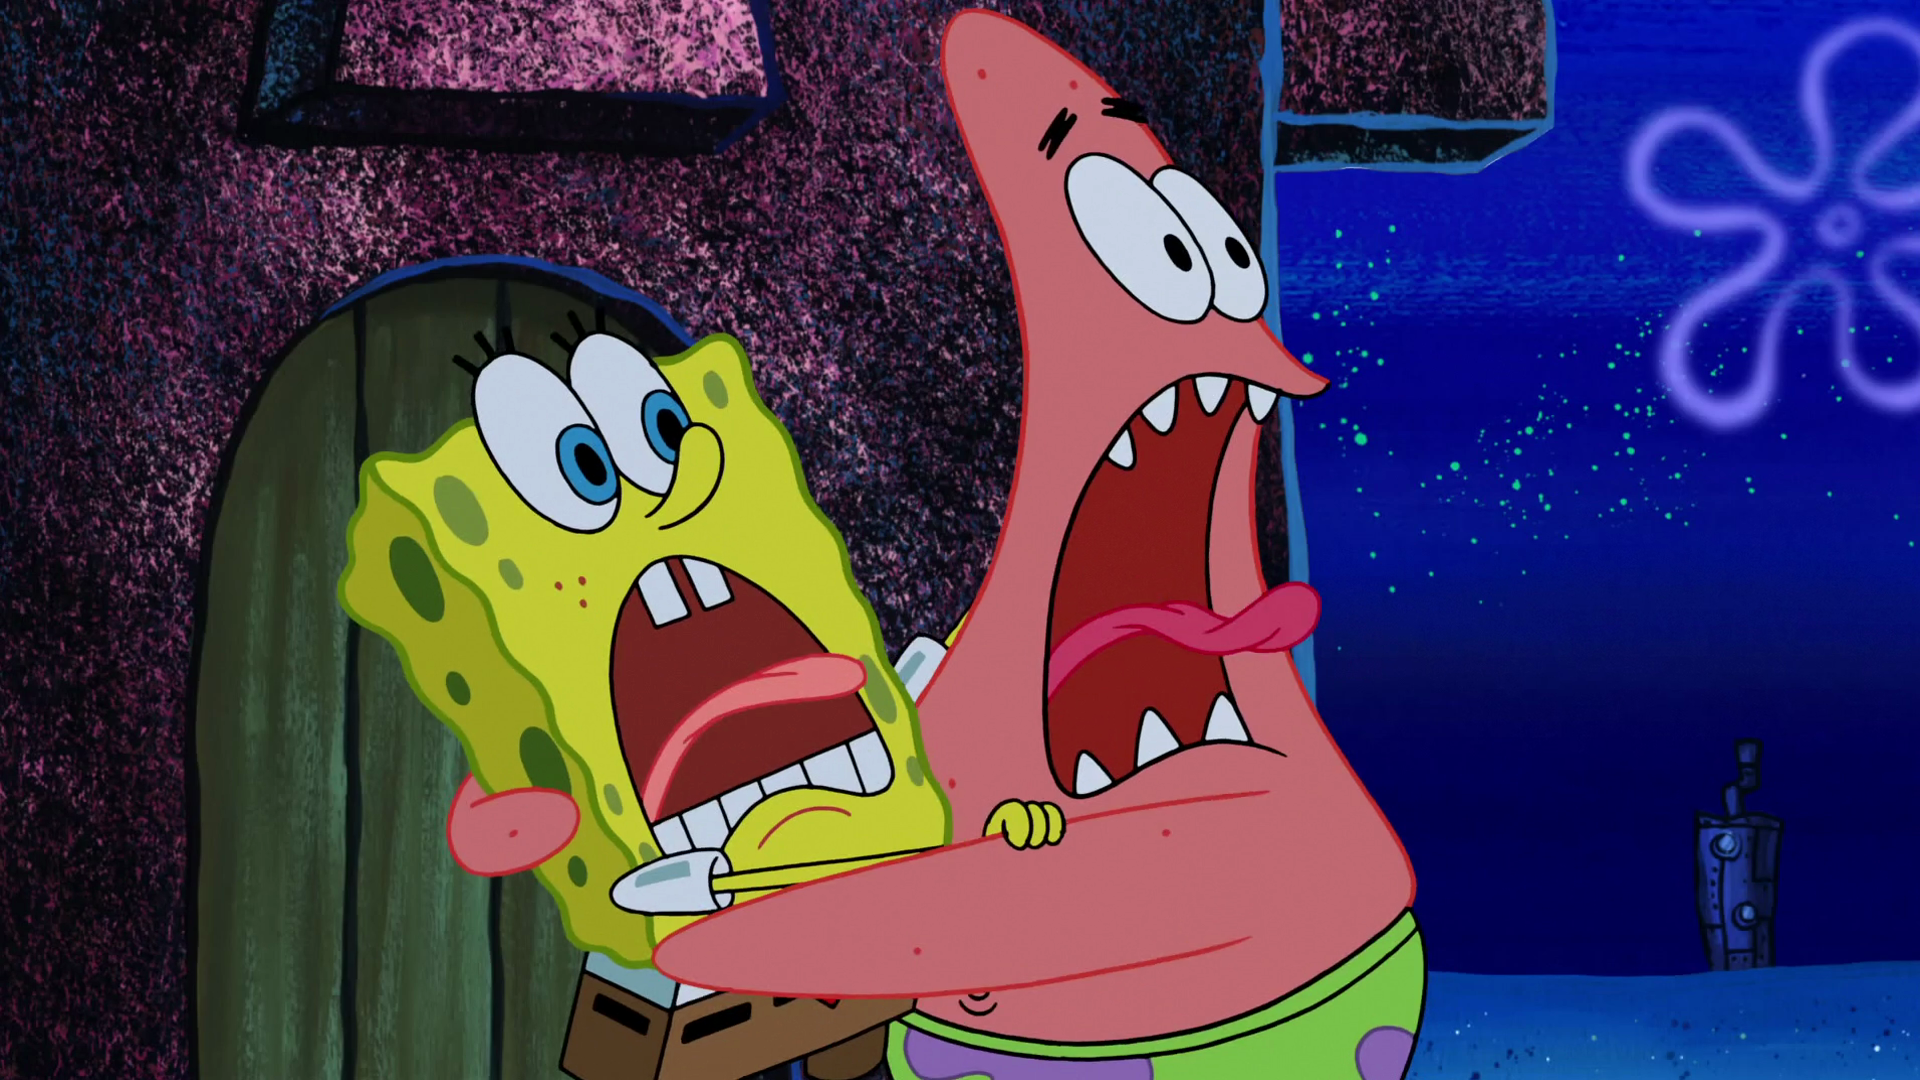 image spongebob and patrick are screaming of terror png the